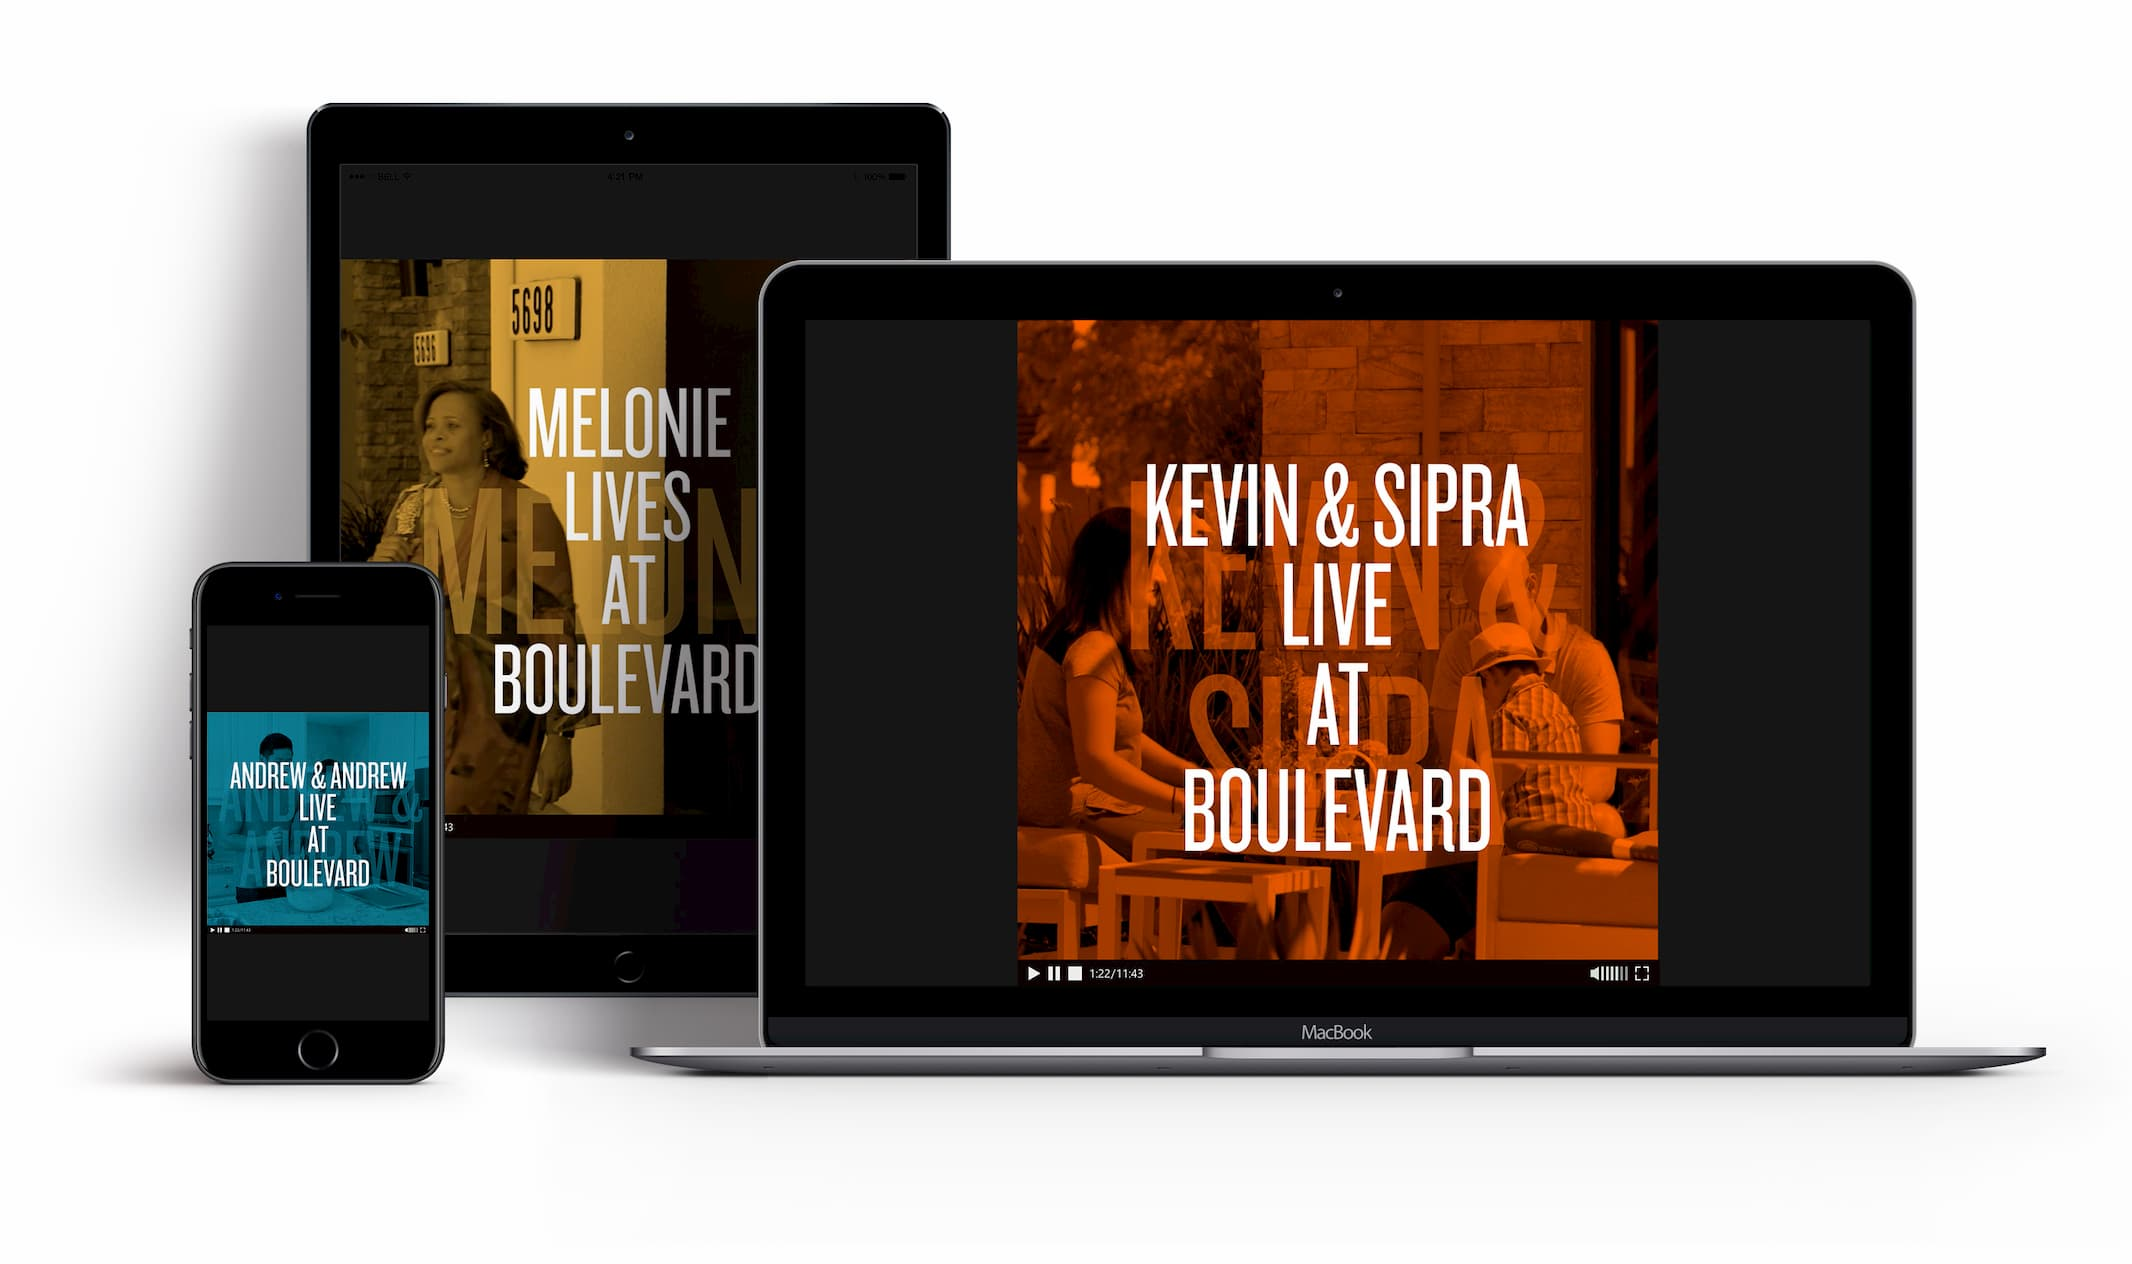 boulevard videos displaying on laptop, tablet and phone